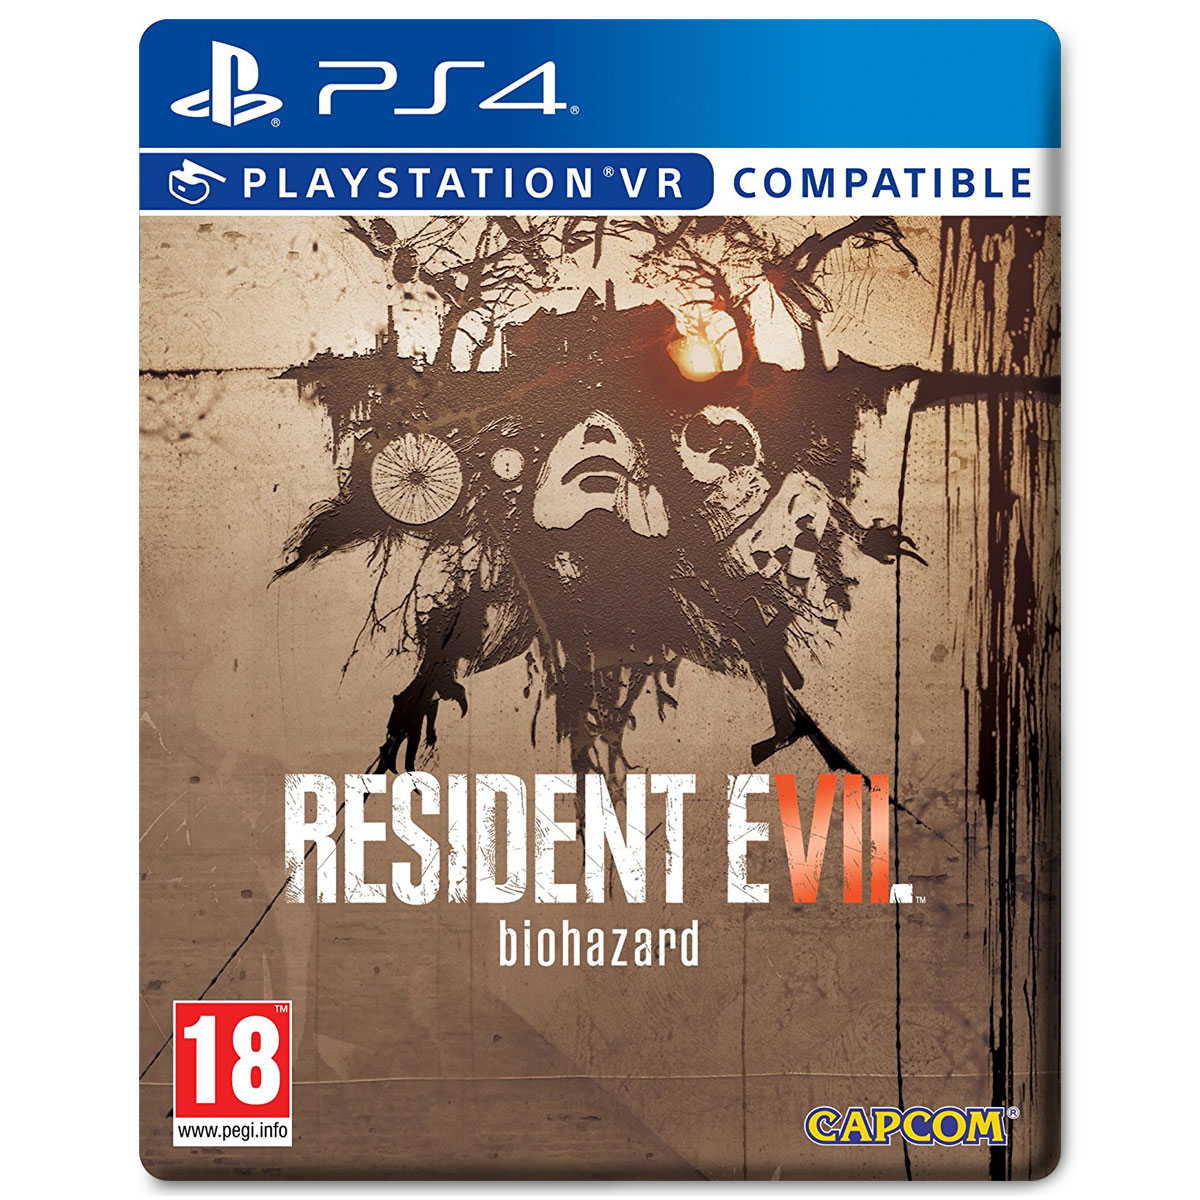 Jeux PS4 Resident Evil VII : Biohazard - Steelbook Edition (PS4) Resident Evil VII : Biohazard - Steelbook Edition (PS4)